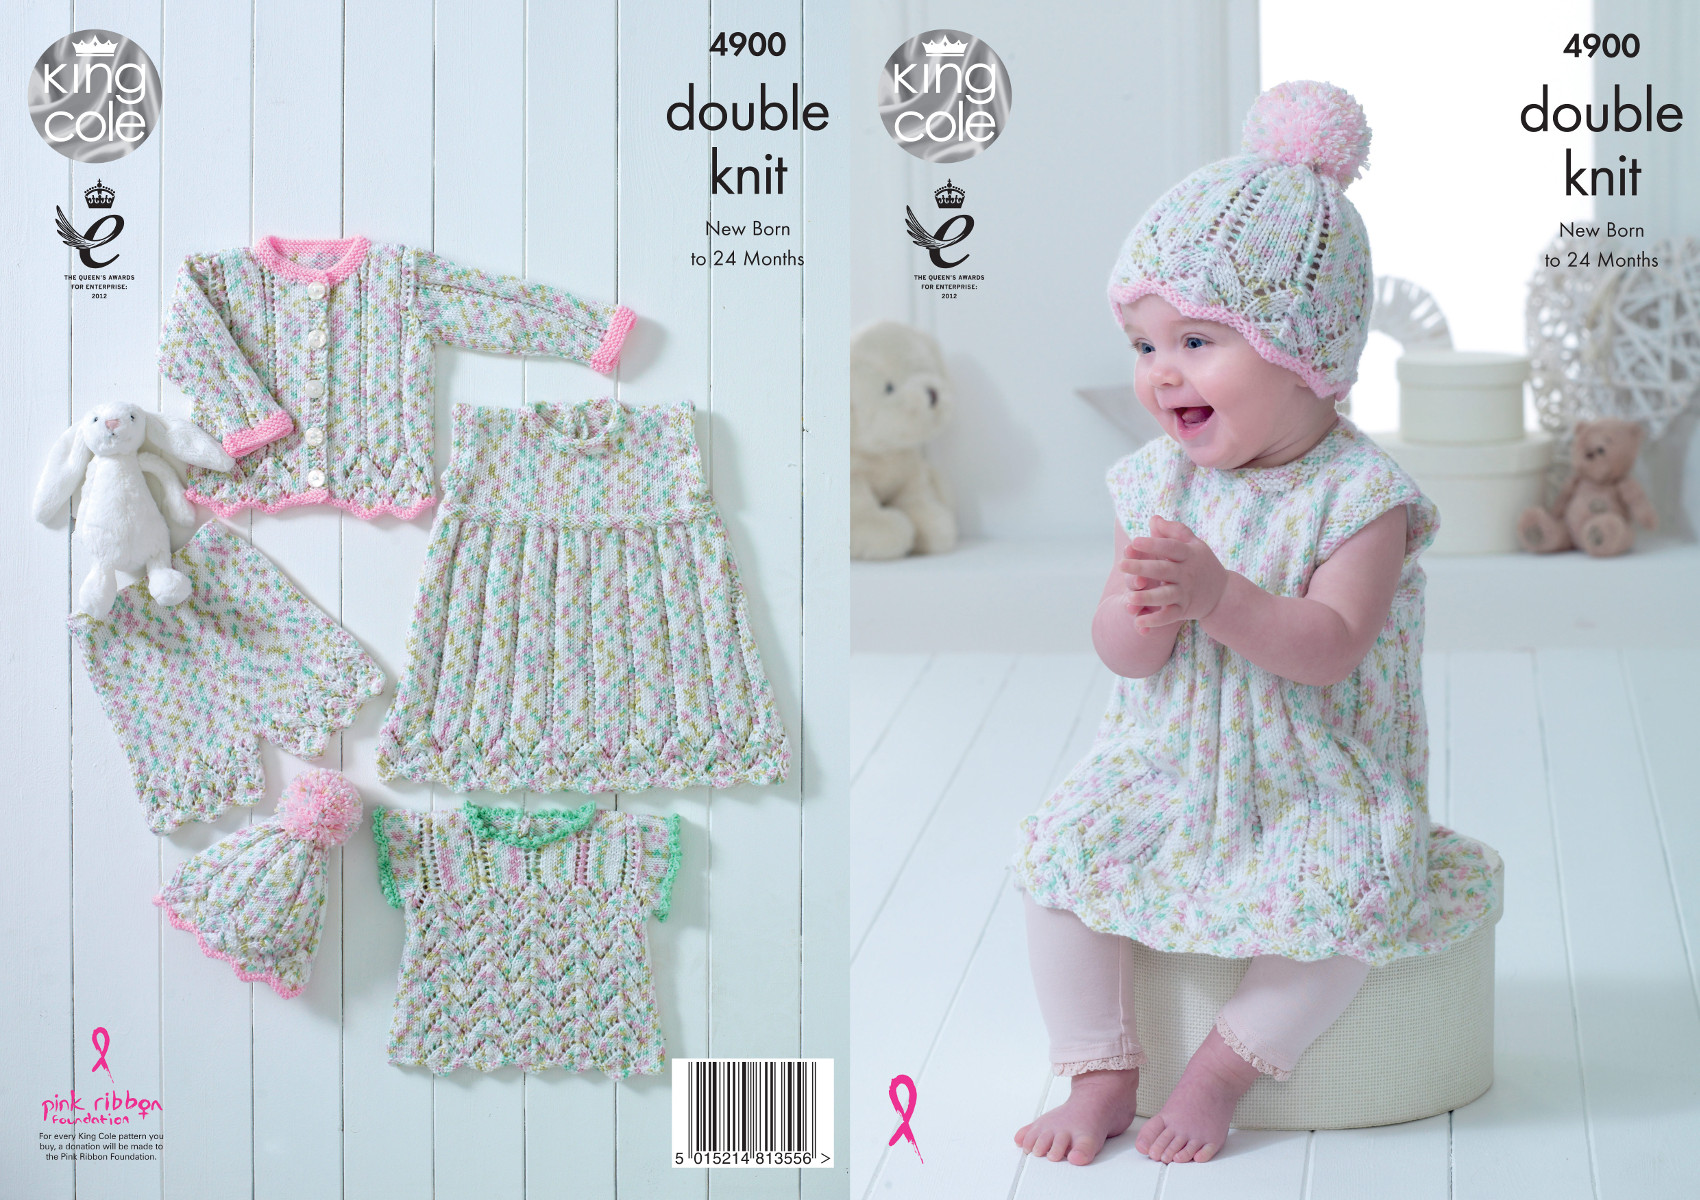 40da1d8811f King Cole Baby Double Knitting Pattern Lace Dress Top Cardigan ...